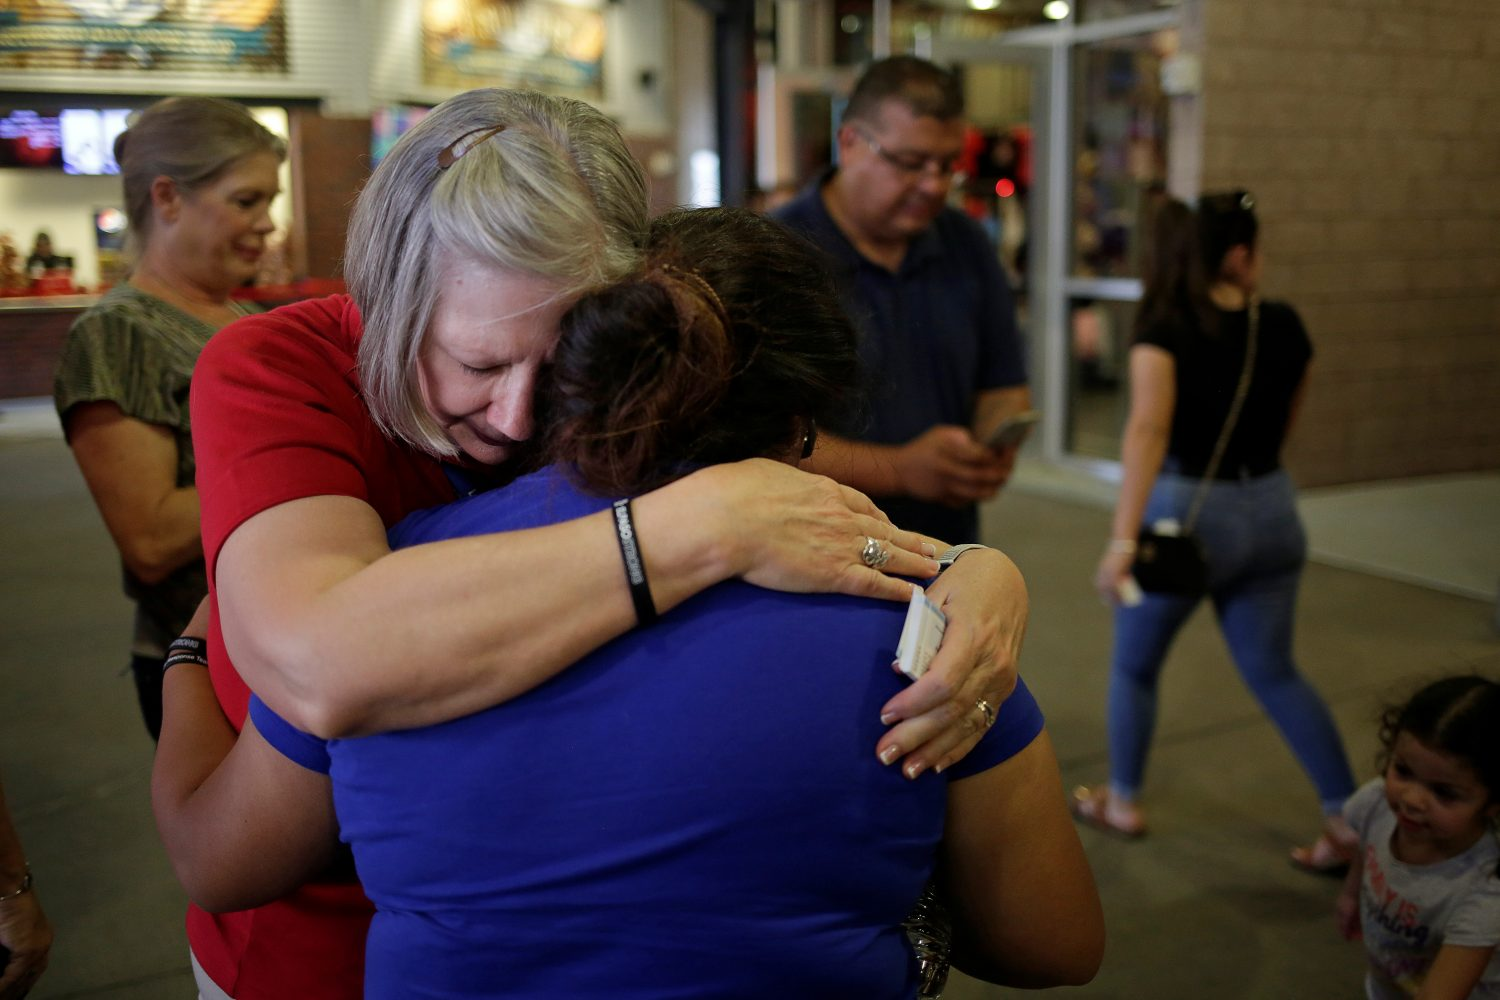 People embrace during a memorial for the victims of a shooting at a Walmart store in El Paso, Texas, U.S. August 14, 2019. REUTERS/Jose Luis Gonzalez